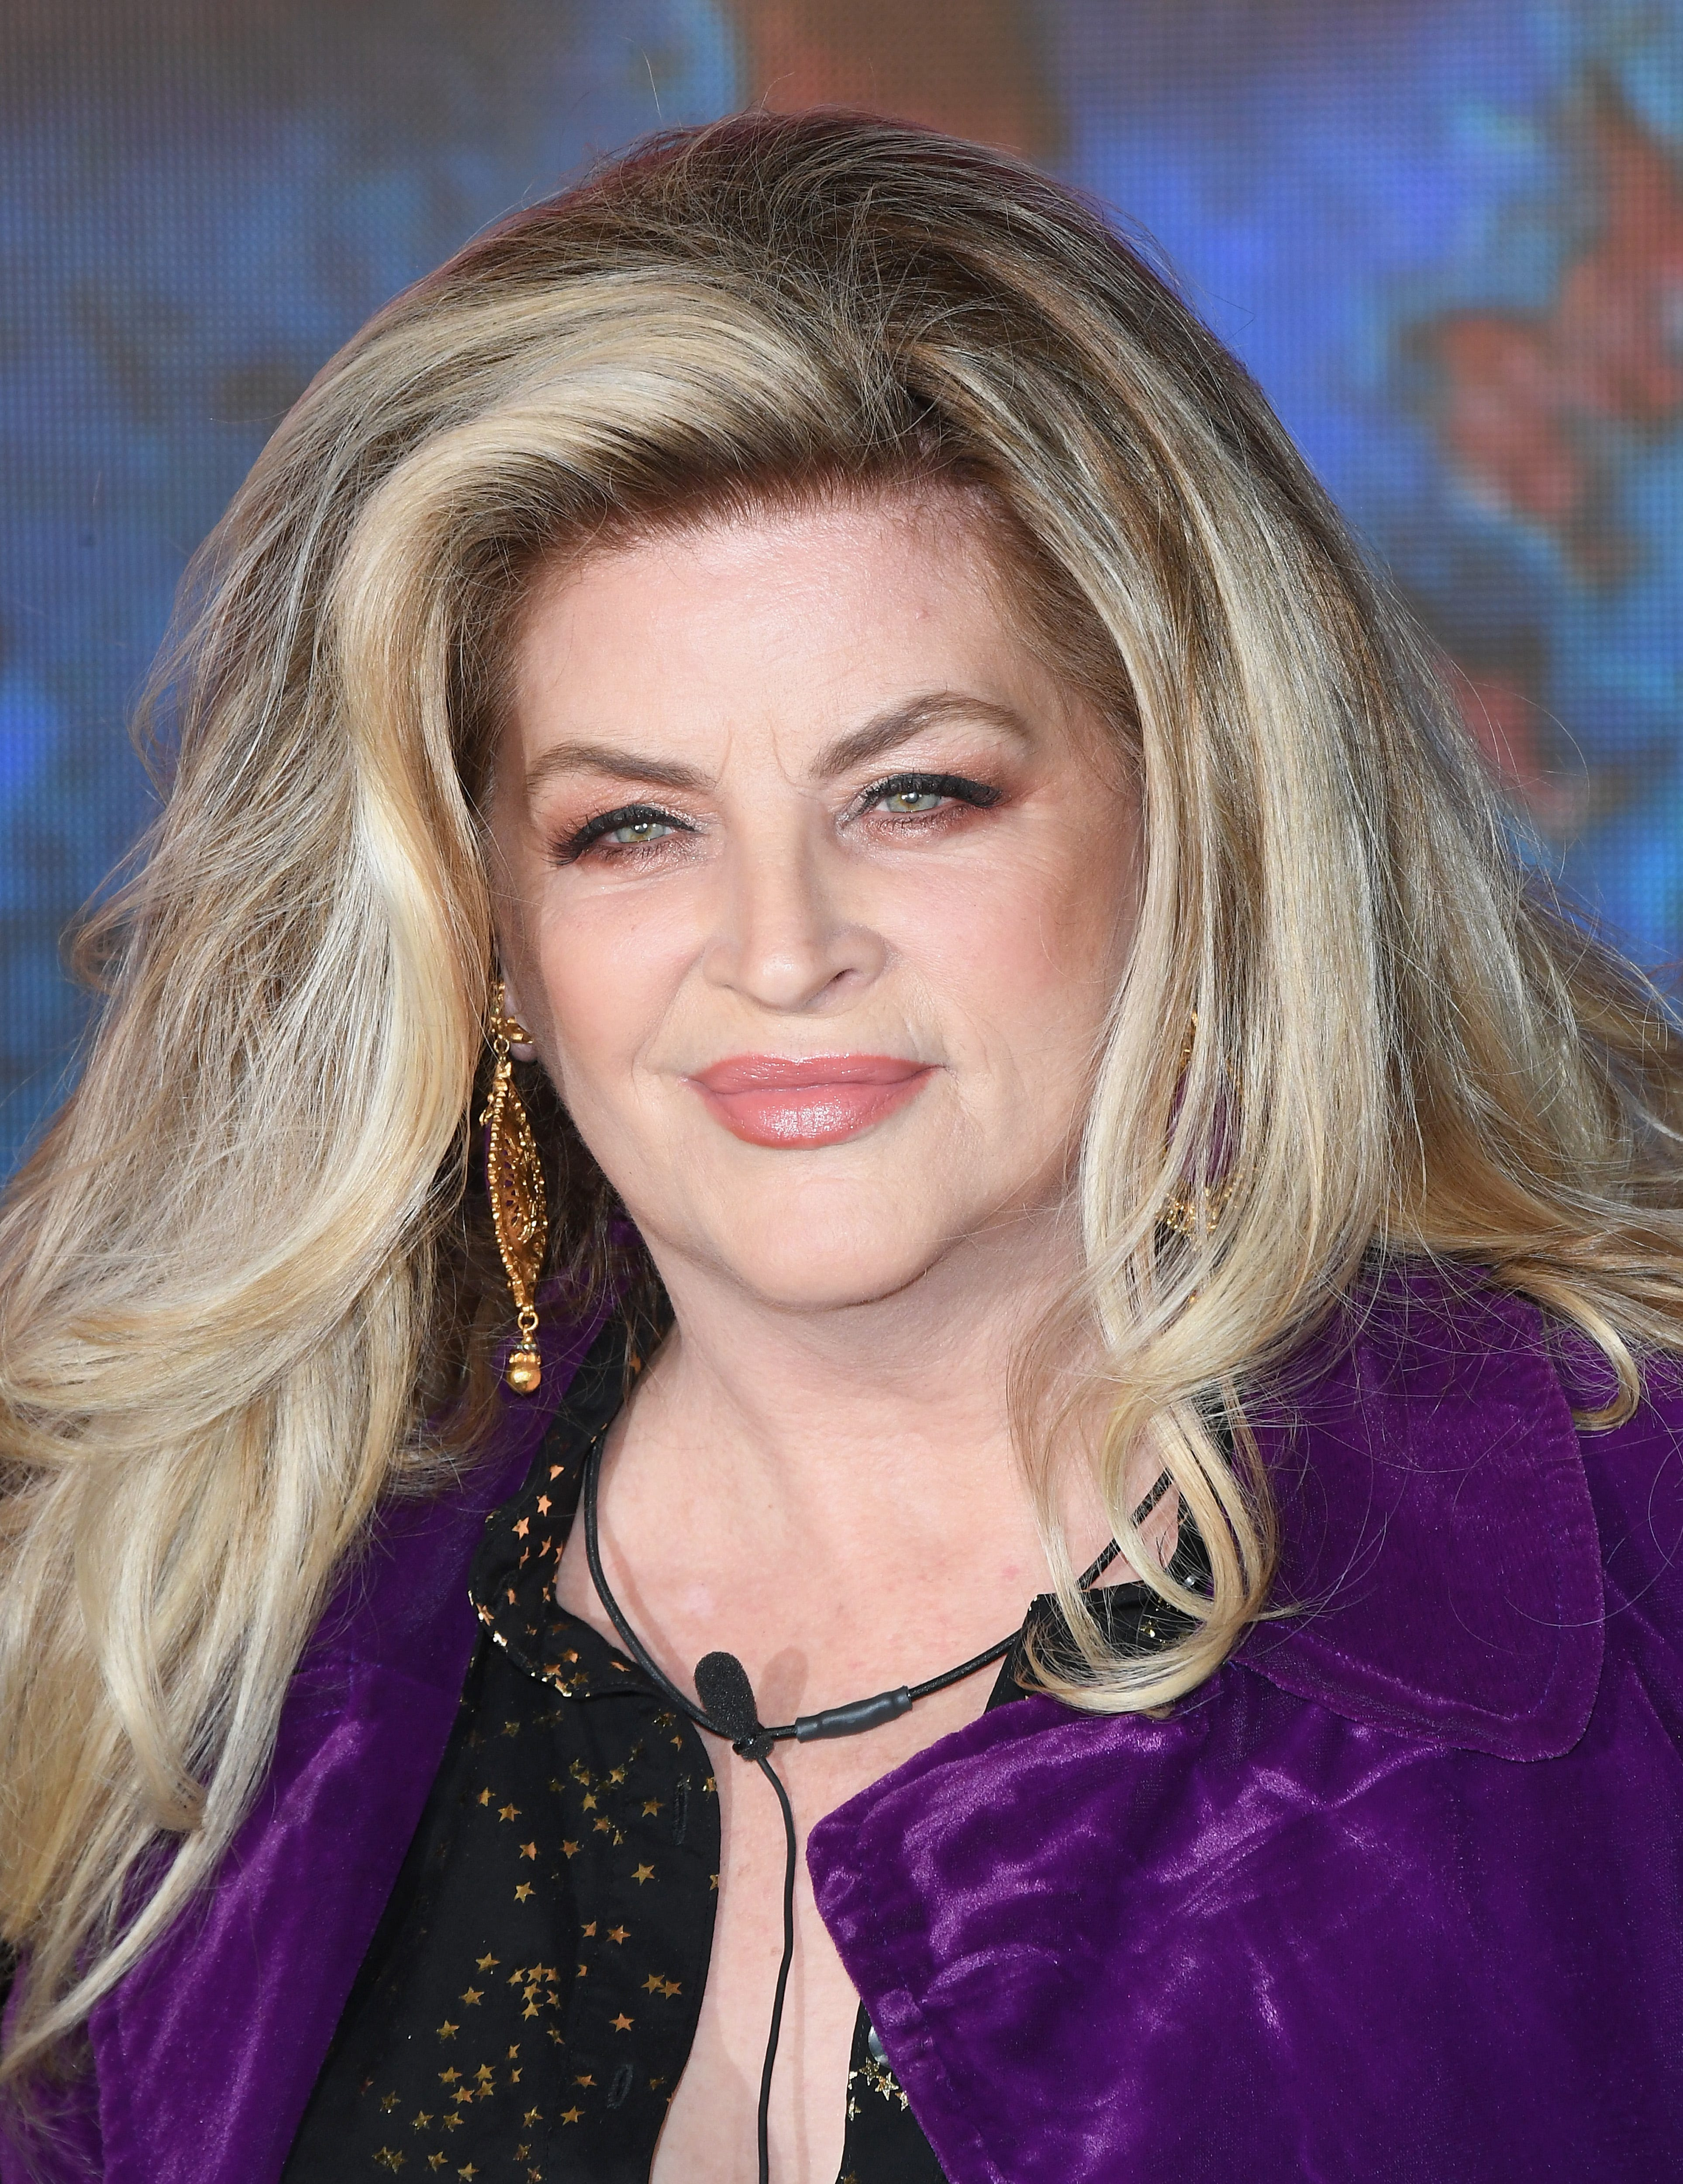 Kirstie Alley told not to  downplay  loss of life after slamming CNN s COVID-19 coverage